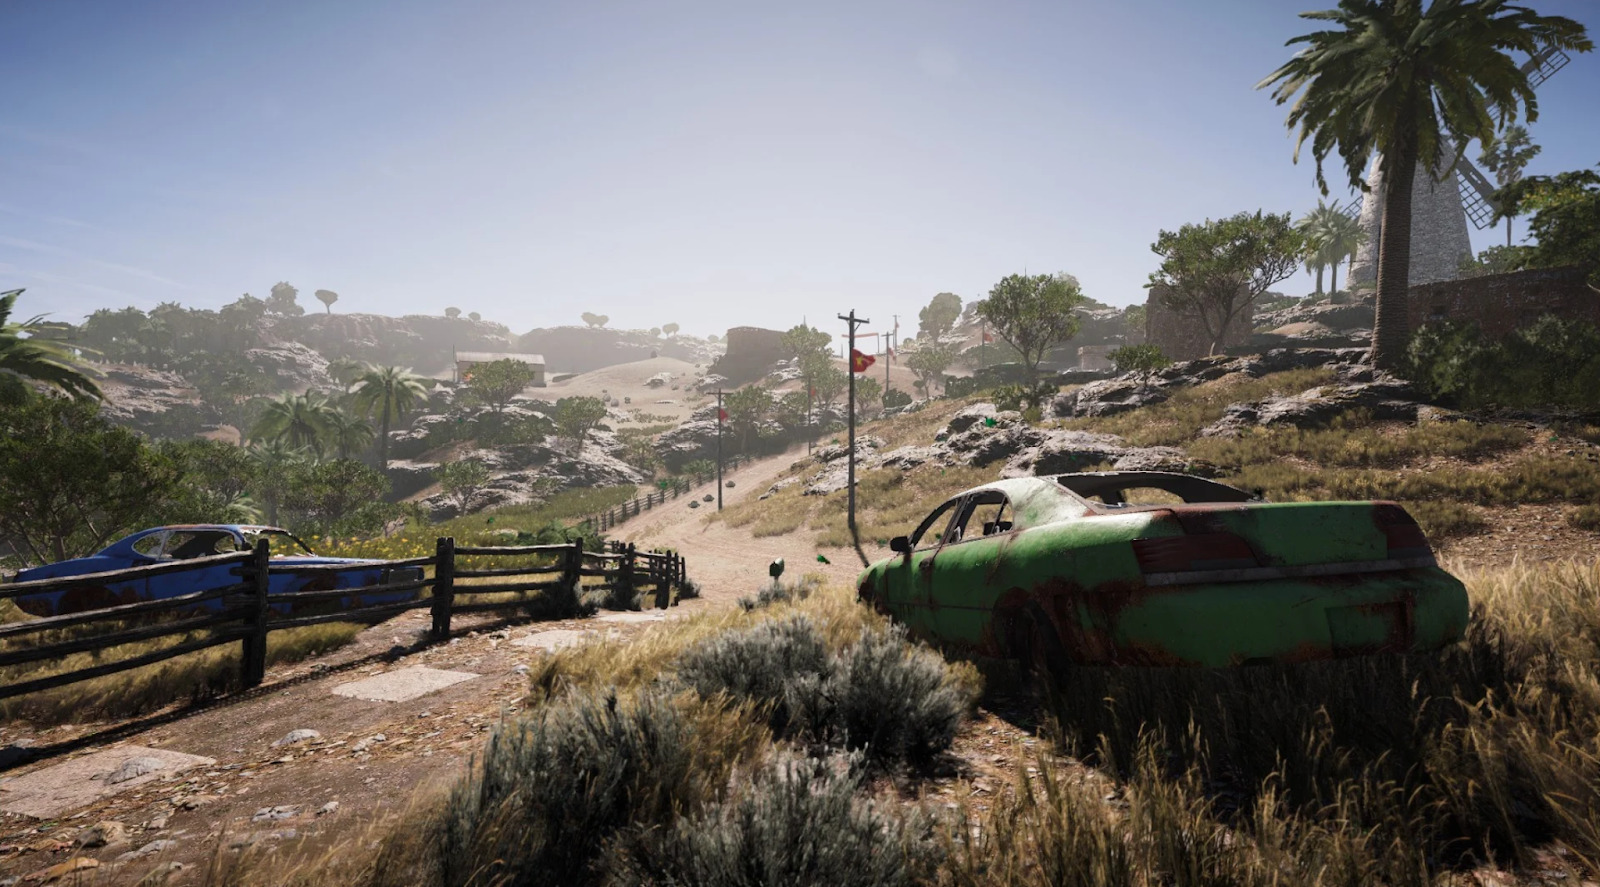 farcry 6 cast what is farcry 6 about farcry 6 plot best deer hunting spots in farcry 6 brietbart farcry 6 crafting in farcry 6 easiest place to find pronghorns farcry 6 buy farcy 6 farcry6 fc6 steamkey epic key allkeyshop cd key price comparison best price game deal game deals video game price comparison game code game key buy key code buy game key price compare best game deals best game deal cdkey deal cdkey buy game code price download game free games preview release date where to buy best price buy farcry 6 ghost command farcry 6 how to get genas car farcry 6 leak farcry 6 location farcry 6 metacritic farcry 6 nana voice actor farcry 6 new dawn cost farcry 6 reqirements farcry 6 the good boy farcry 6 walk away ending